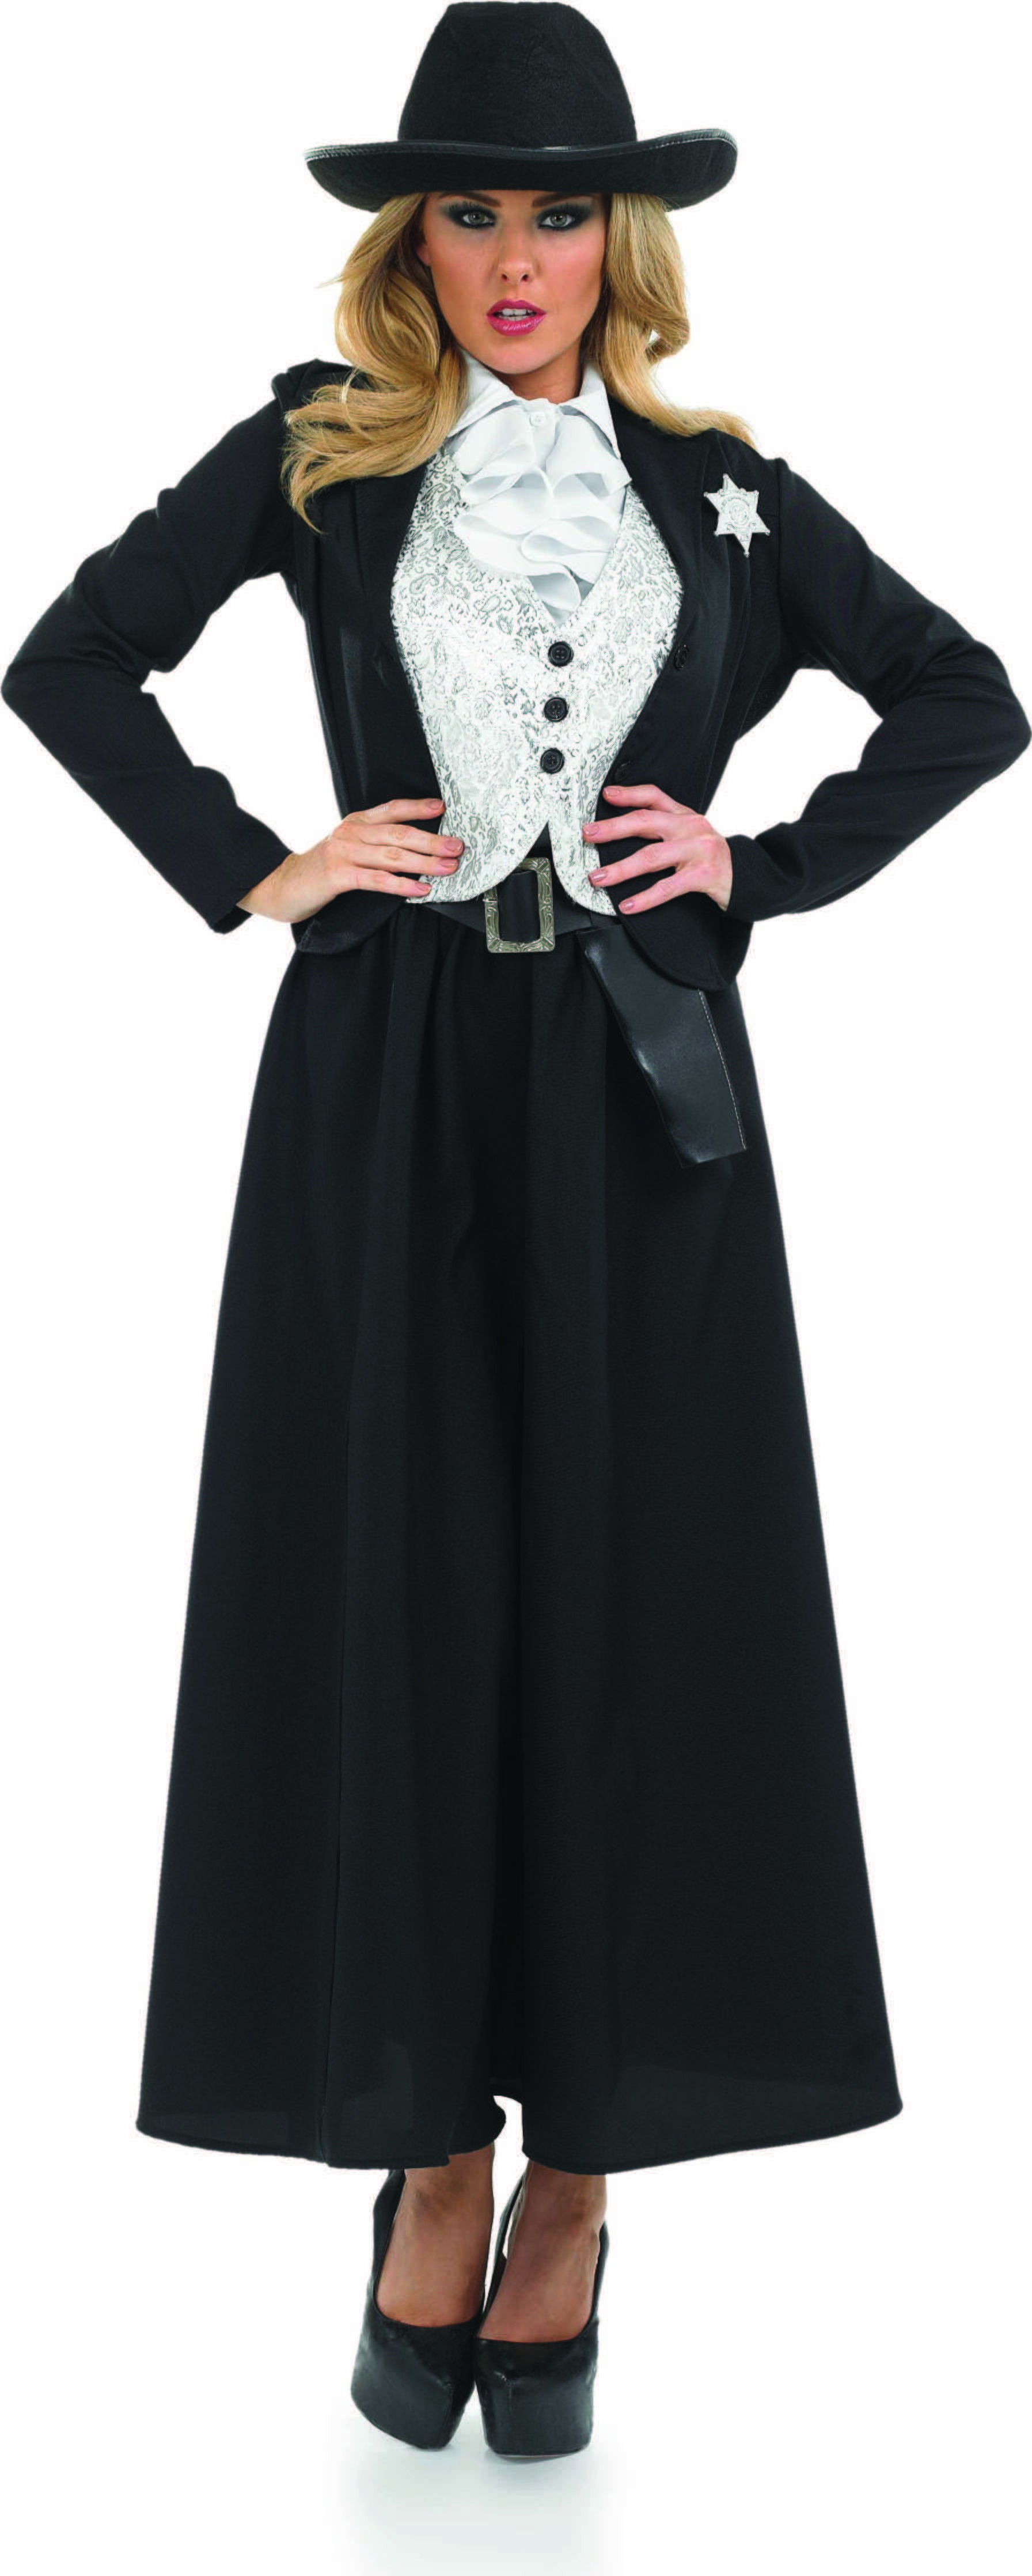 Ladies Old Time Female Sherif Sheriff Outfit - (Black, White)